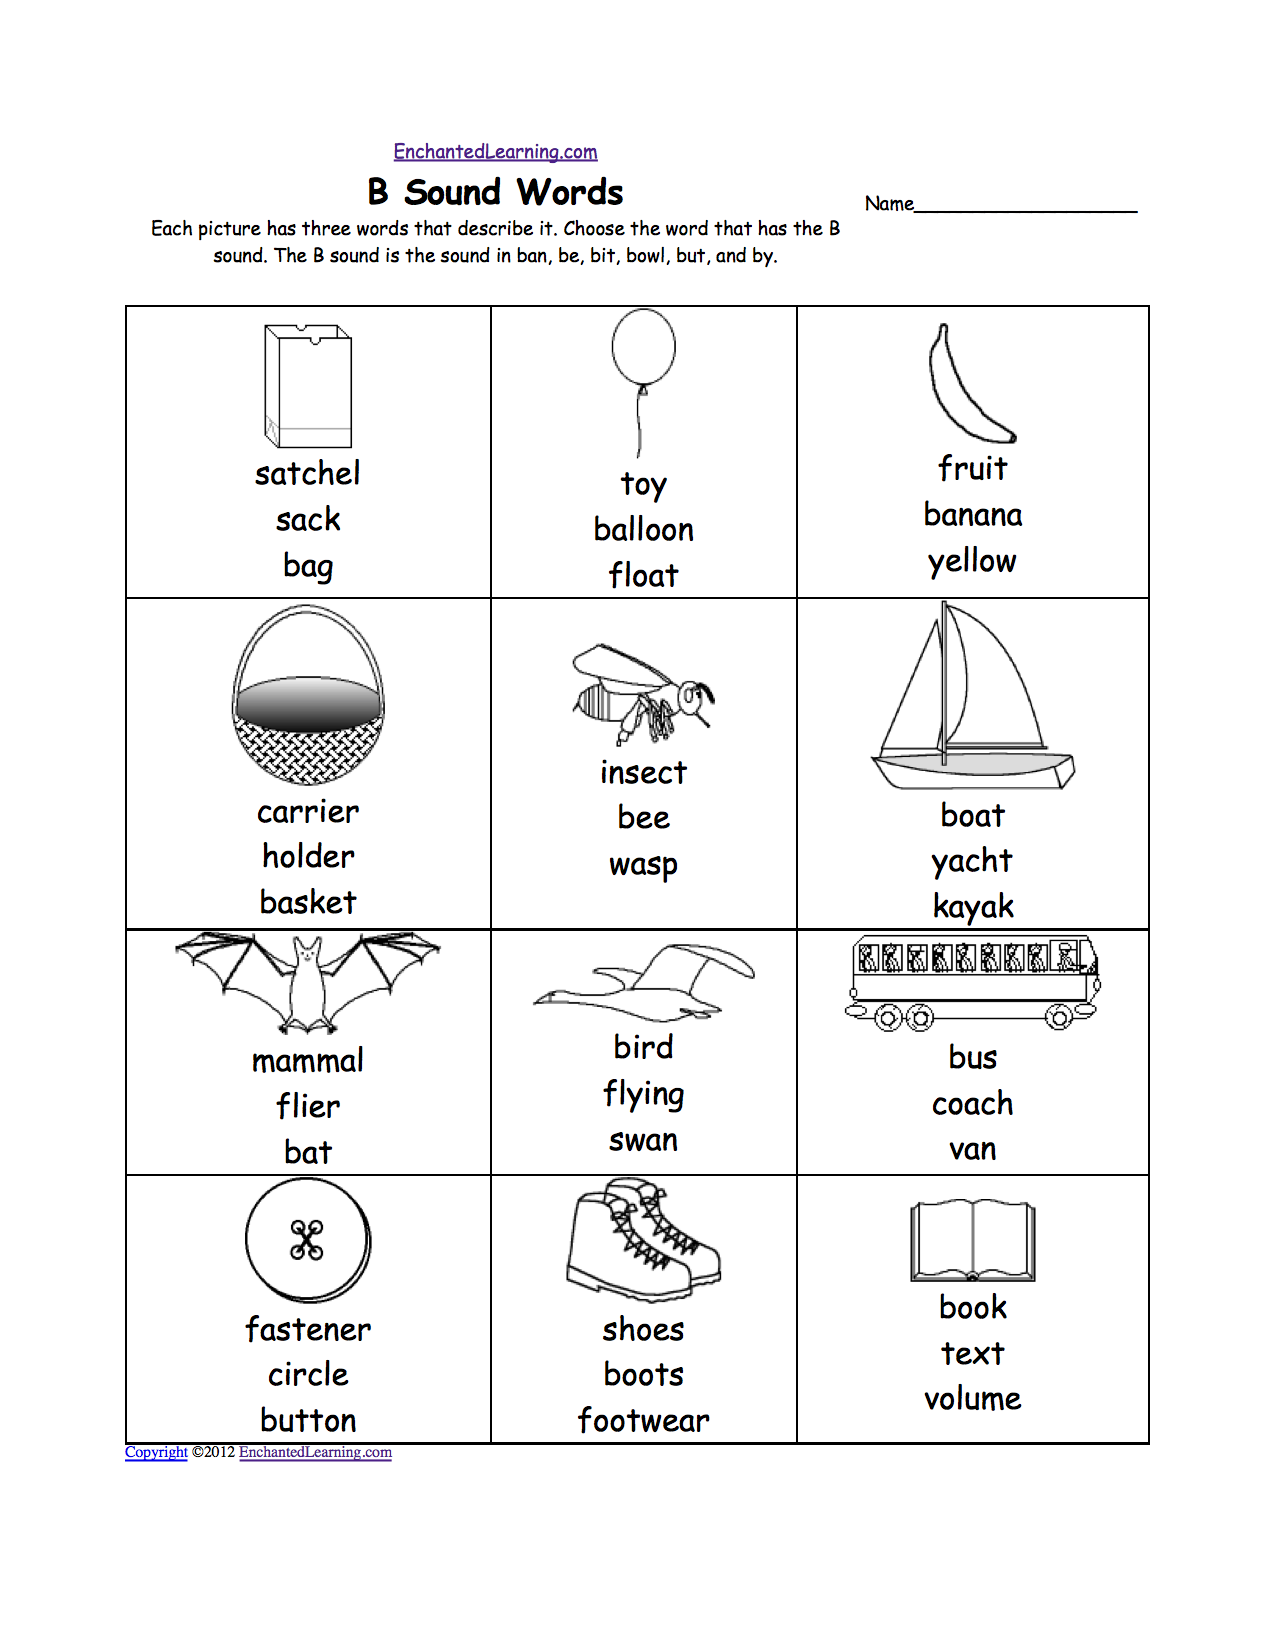 Weirdmailus  Pleasing Phonics Worksheets Multiple Choice Worksheets To Print  With Fascinating Quotbquot Sound Phonics Worksheet Multiple Choice Each Picture Has Three Words That Describe It Choose The Word That Has A Quotbquot Sound The Quotbquot Sound Is The Sound  With Astonishing Reading Activities Worksheets Also Perpendicular Lines Worksheets In Addition Listing Outcomes Worksheet And Beginner Piano Theory Worksheets As Well As Reflexive Pronoun Worksheets Nd Grade Additionally Plotting Coordinates In  Quadrants Worksheet From Enchantedlearningcom With Weirdmailus  Fascinating Phonics Worksheets Multiple Choice Worksheets To Print  With Astonishing Quotbquot Sound Phonics Worksheet Multiple Choice Each Picture Has Three Words That Describe It Choose The Word That Has A Quotbquot Sound The Quotbquot Sound Is The Sound  And Pleasing Reading Activities Worksheets Also Perpendicular Lines Worksheets In Addition Listing Outcomes Worksheet From Enchantedlearningcom